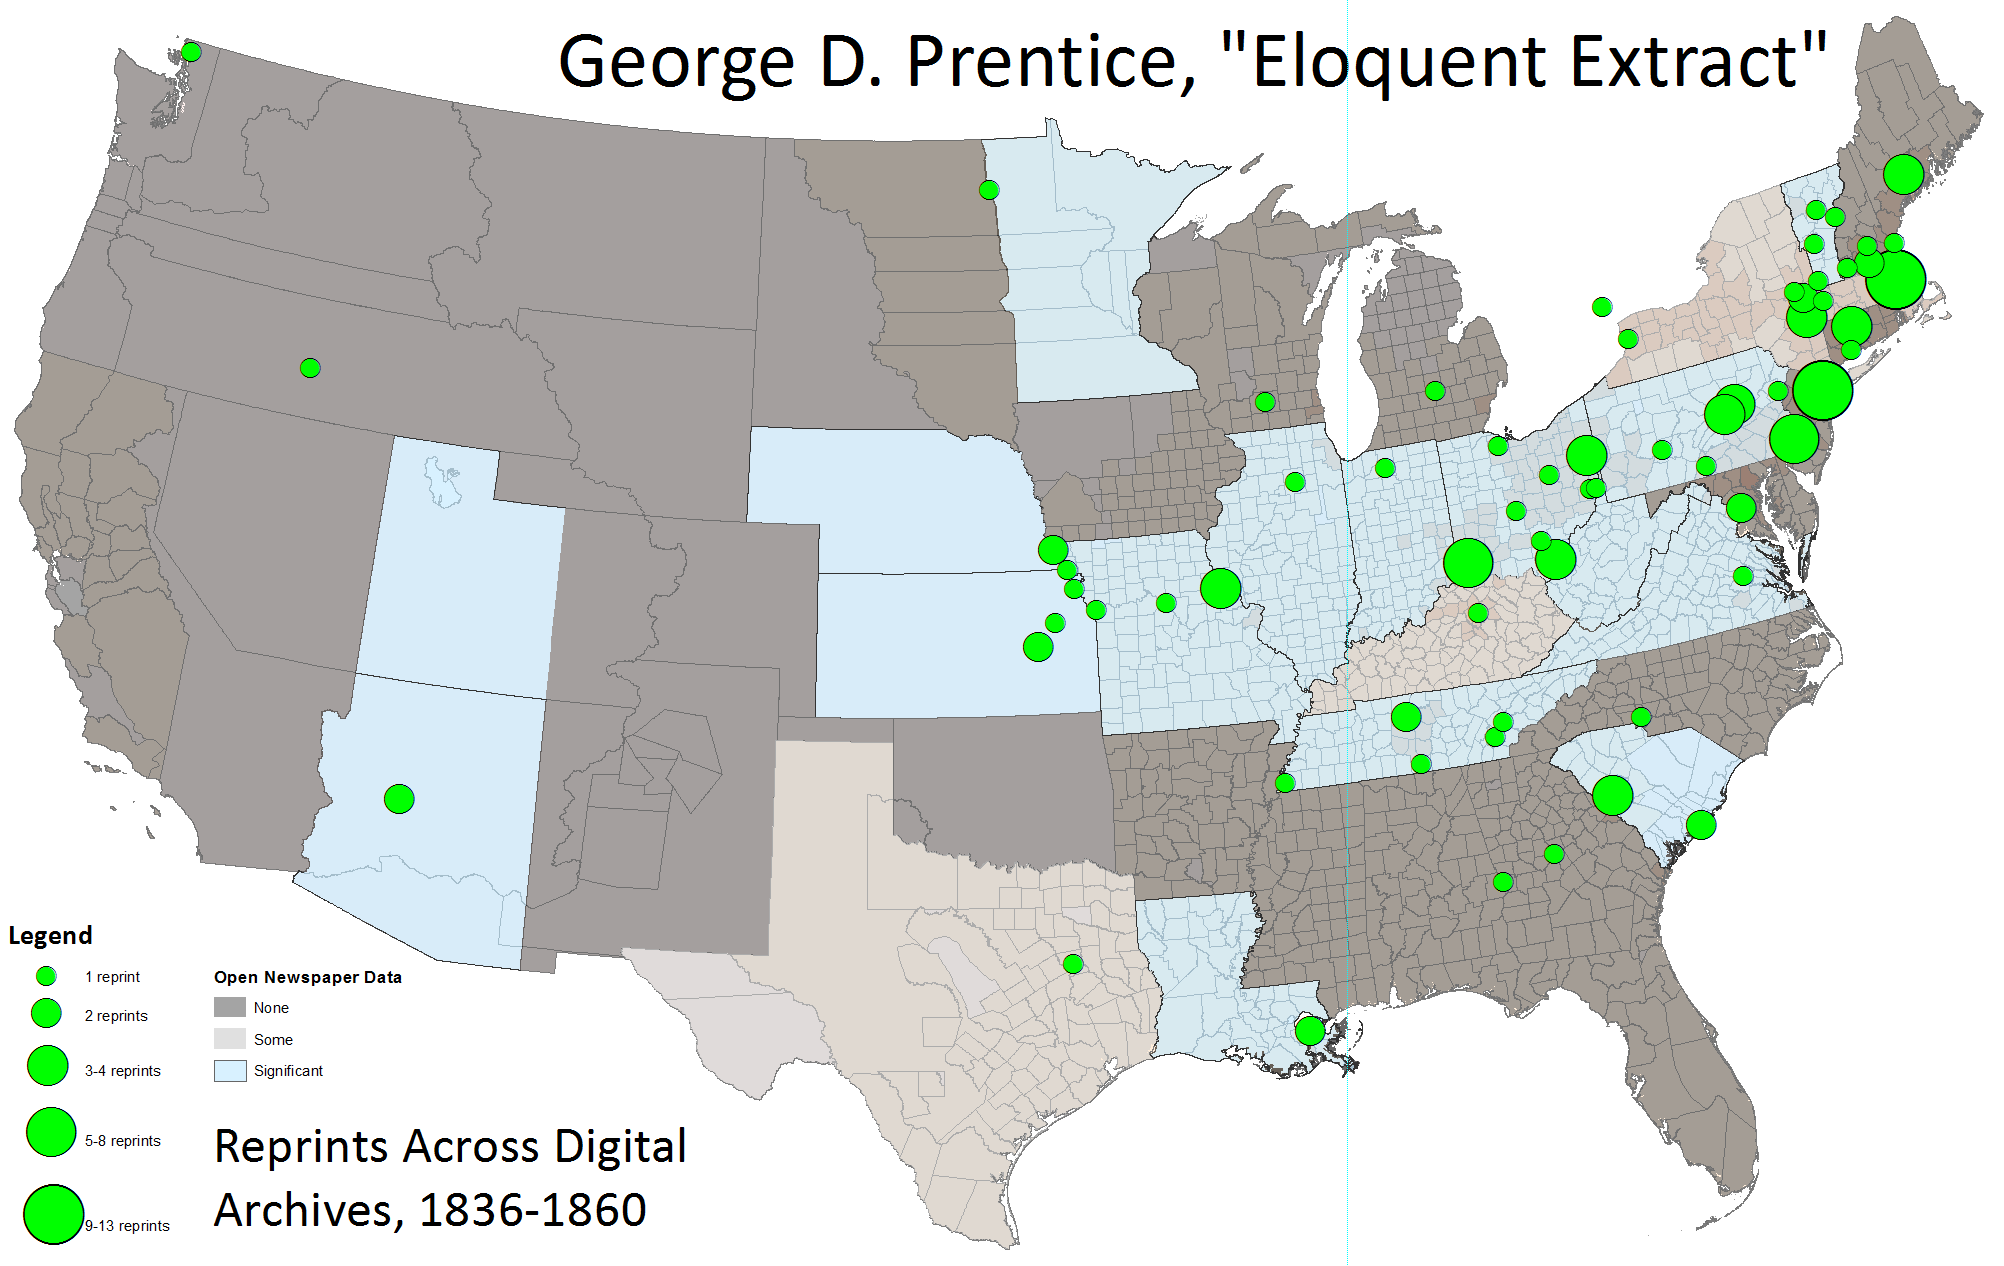 This visualization maps the bibliography of the same snippet, Eloquent Extract, across Chronicling America and a range of commercial archives of historical newspapers and magazines.